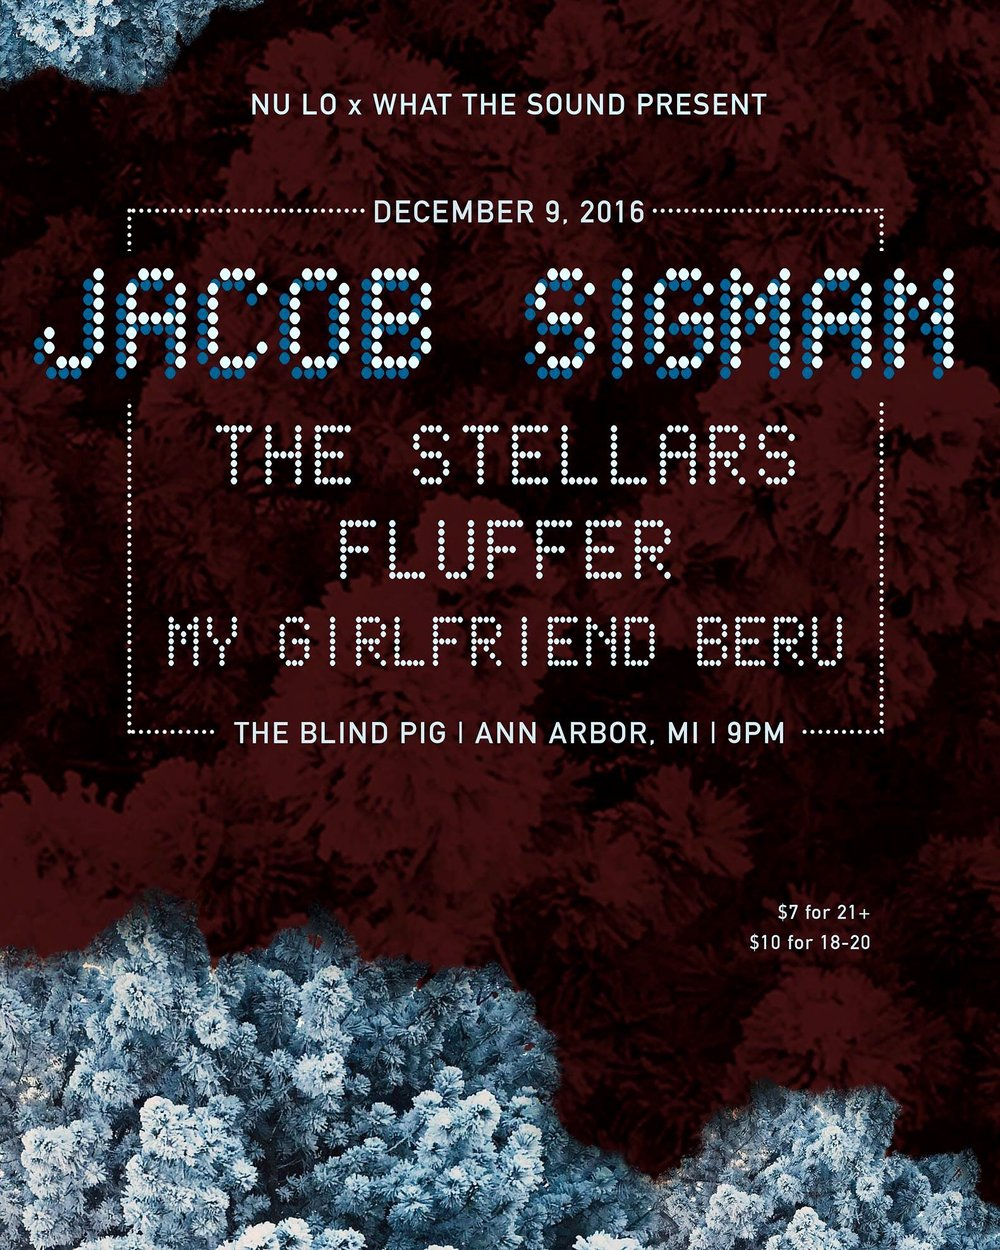 Jacob Sigman / The Stellars / Fluffer / My Girlfriend Beru - Artwork by Riley Savage  December 9th, 2016 at Blind Pig